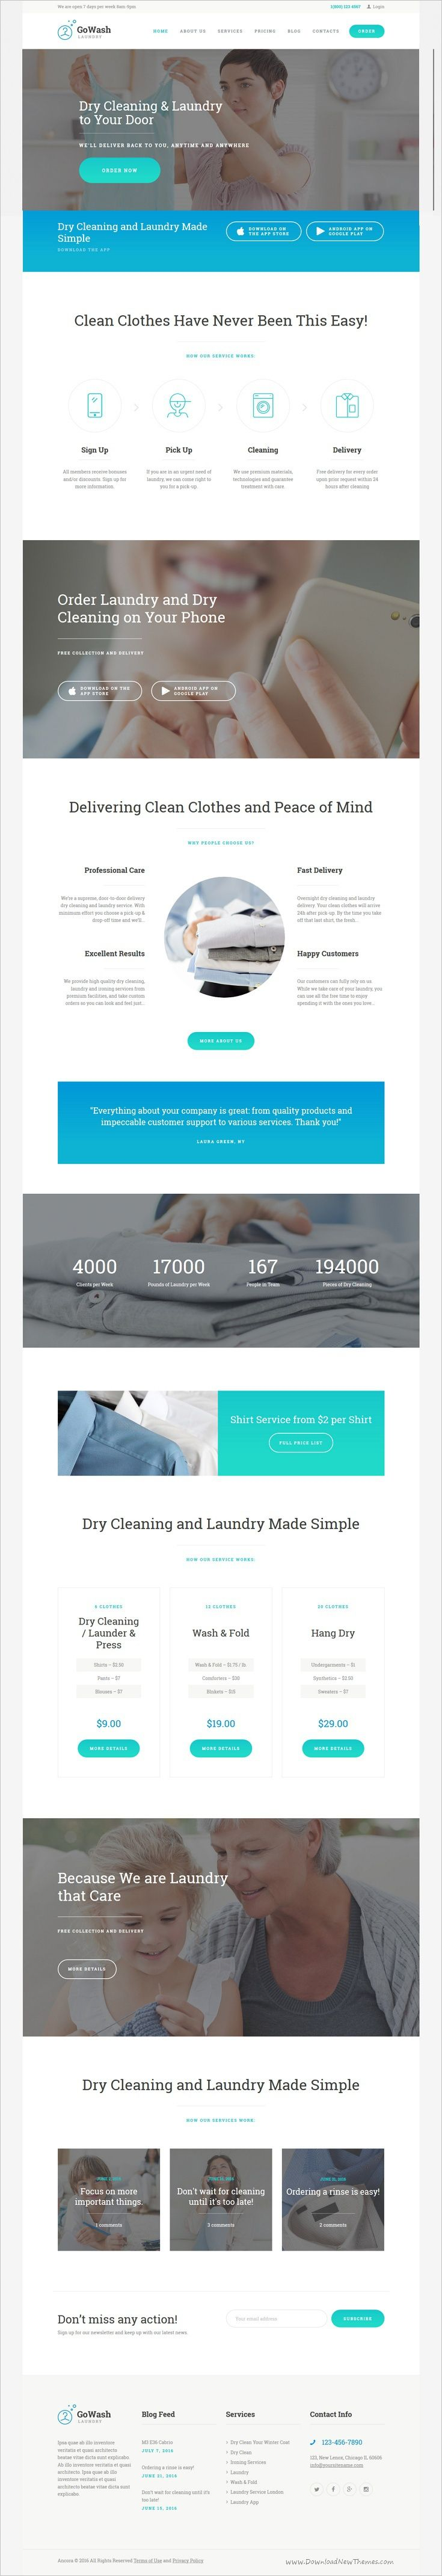 1000 Ideas About Dry Cleaning Business On Pinterest